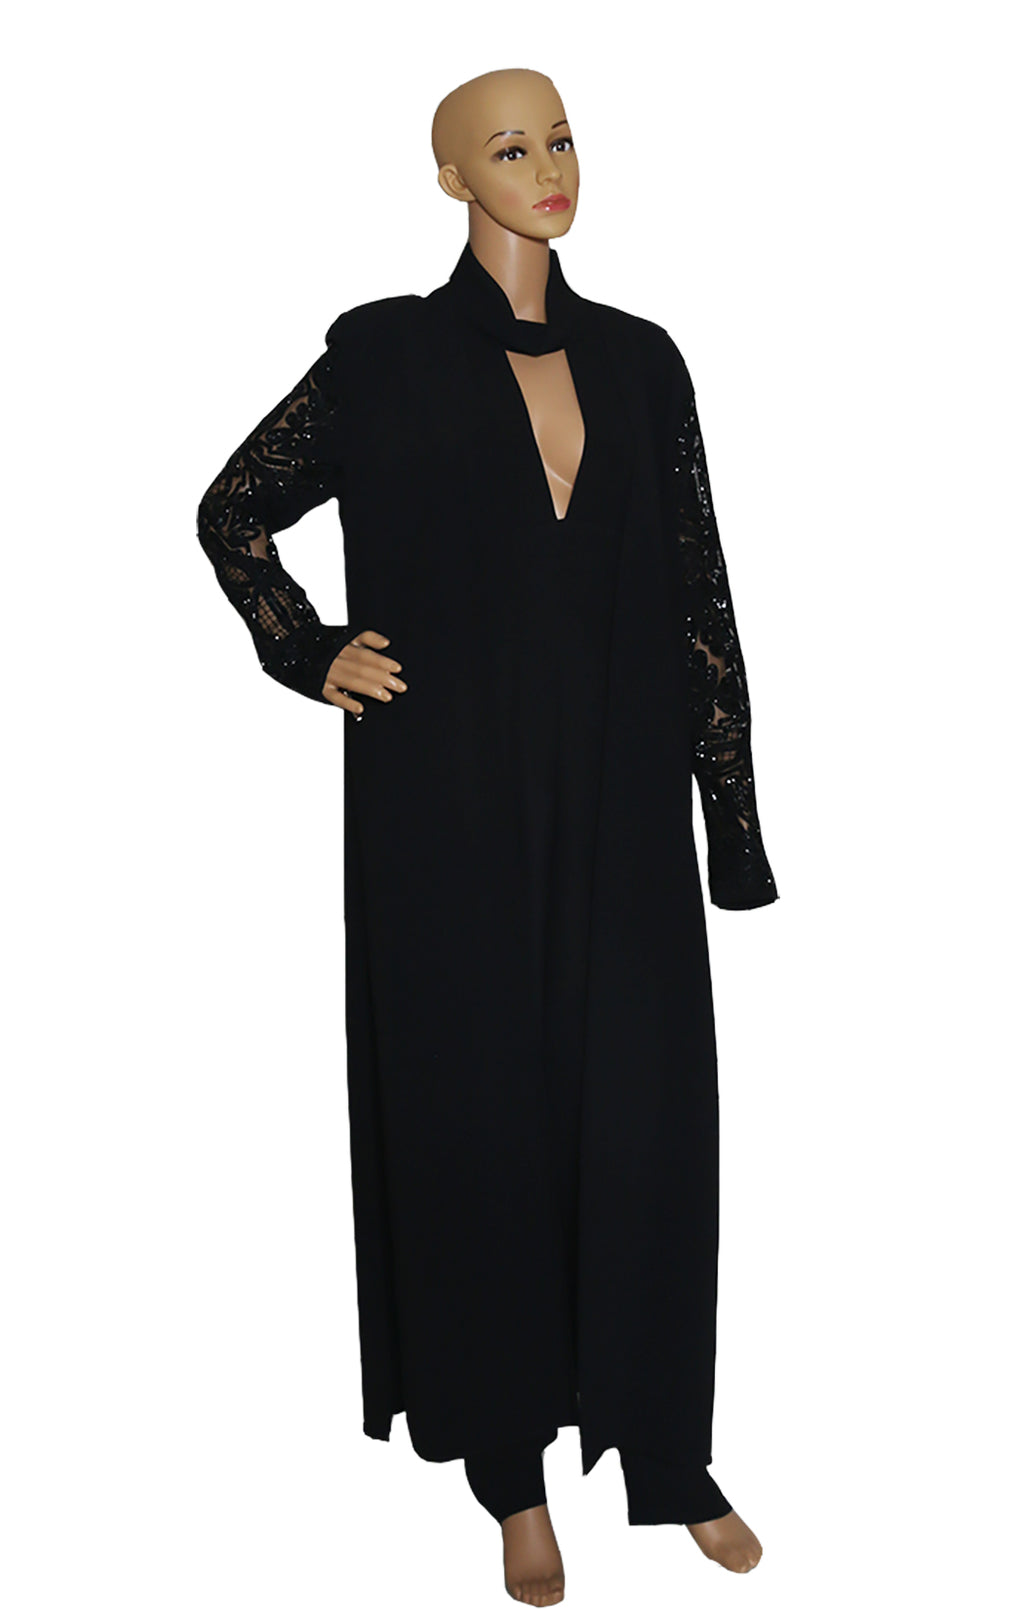 Front view of ELIE SAAB  Long Coat and Jumpsuit  Jumpsuit Size: 42 (US 10) Coat Size: 40 (US 8)